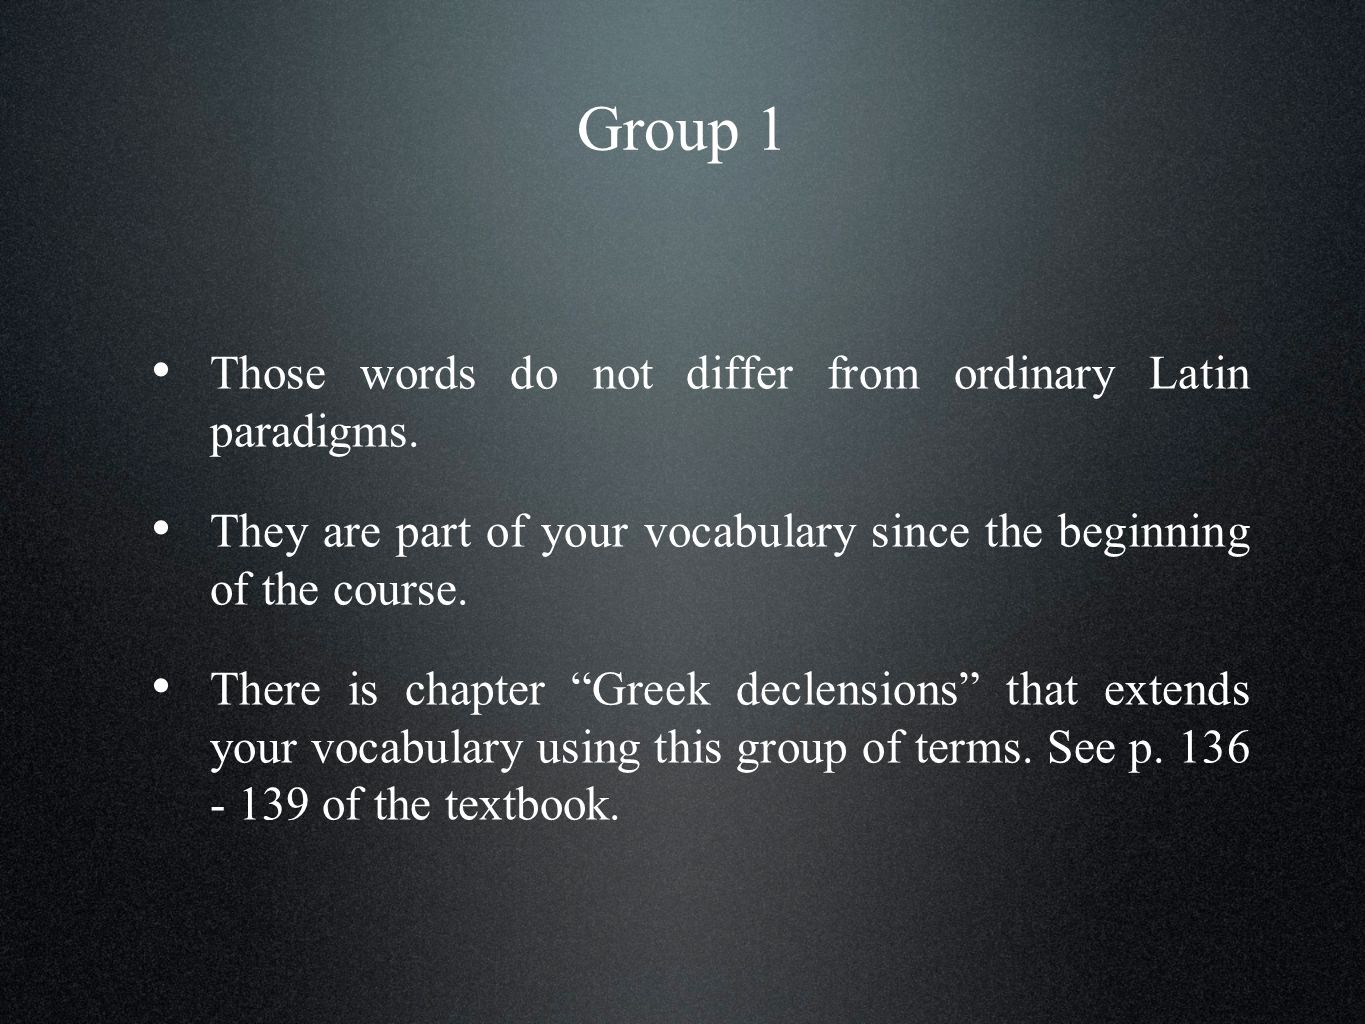 Group 1 Those words do not differ from ordinary Latin paradigms.